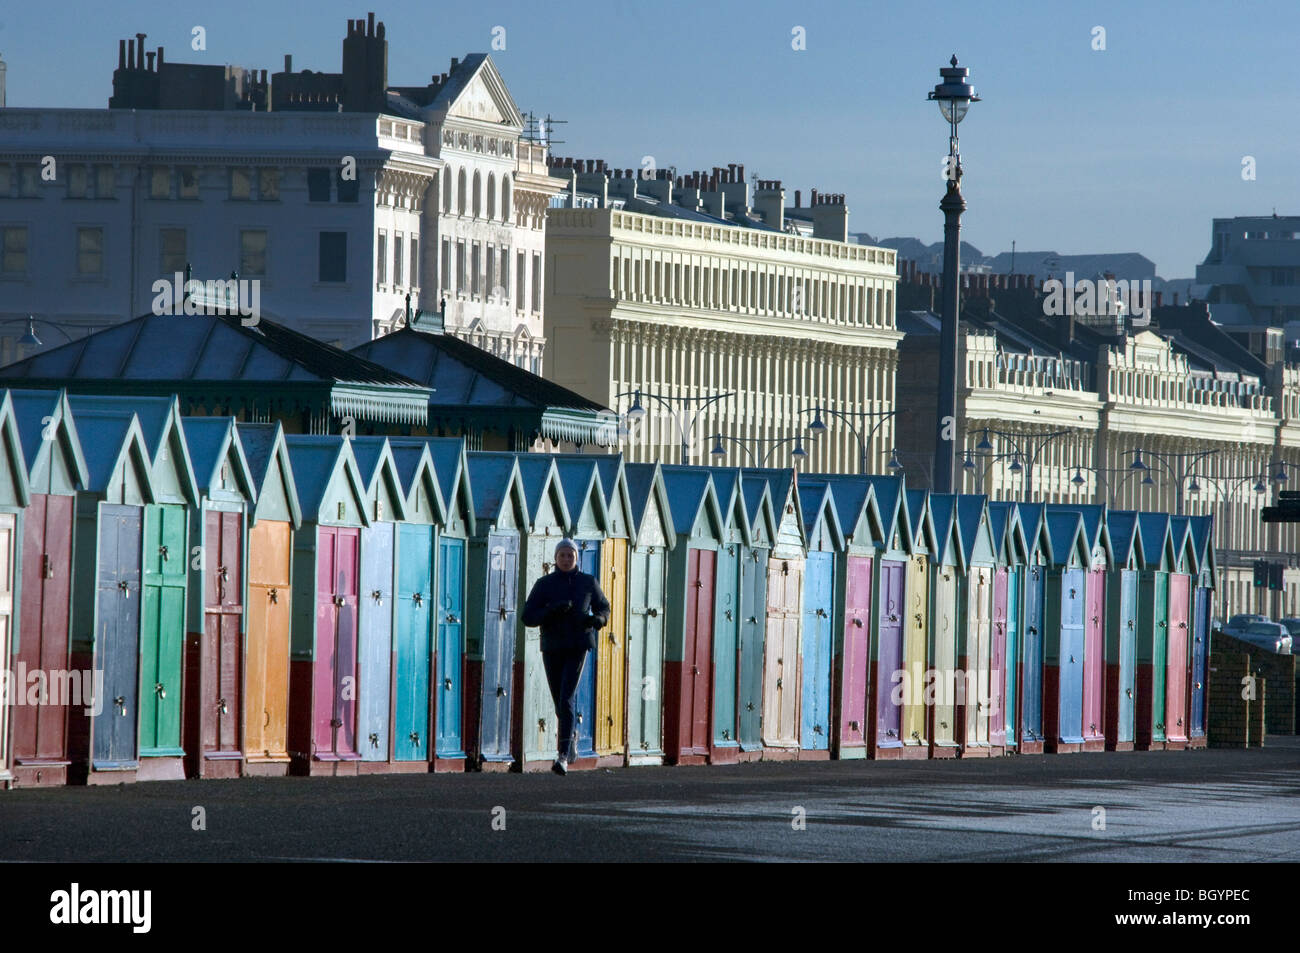 A jogger runs past a row of Beach Huts on Hove seafront promenade - Stock Image